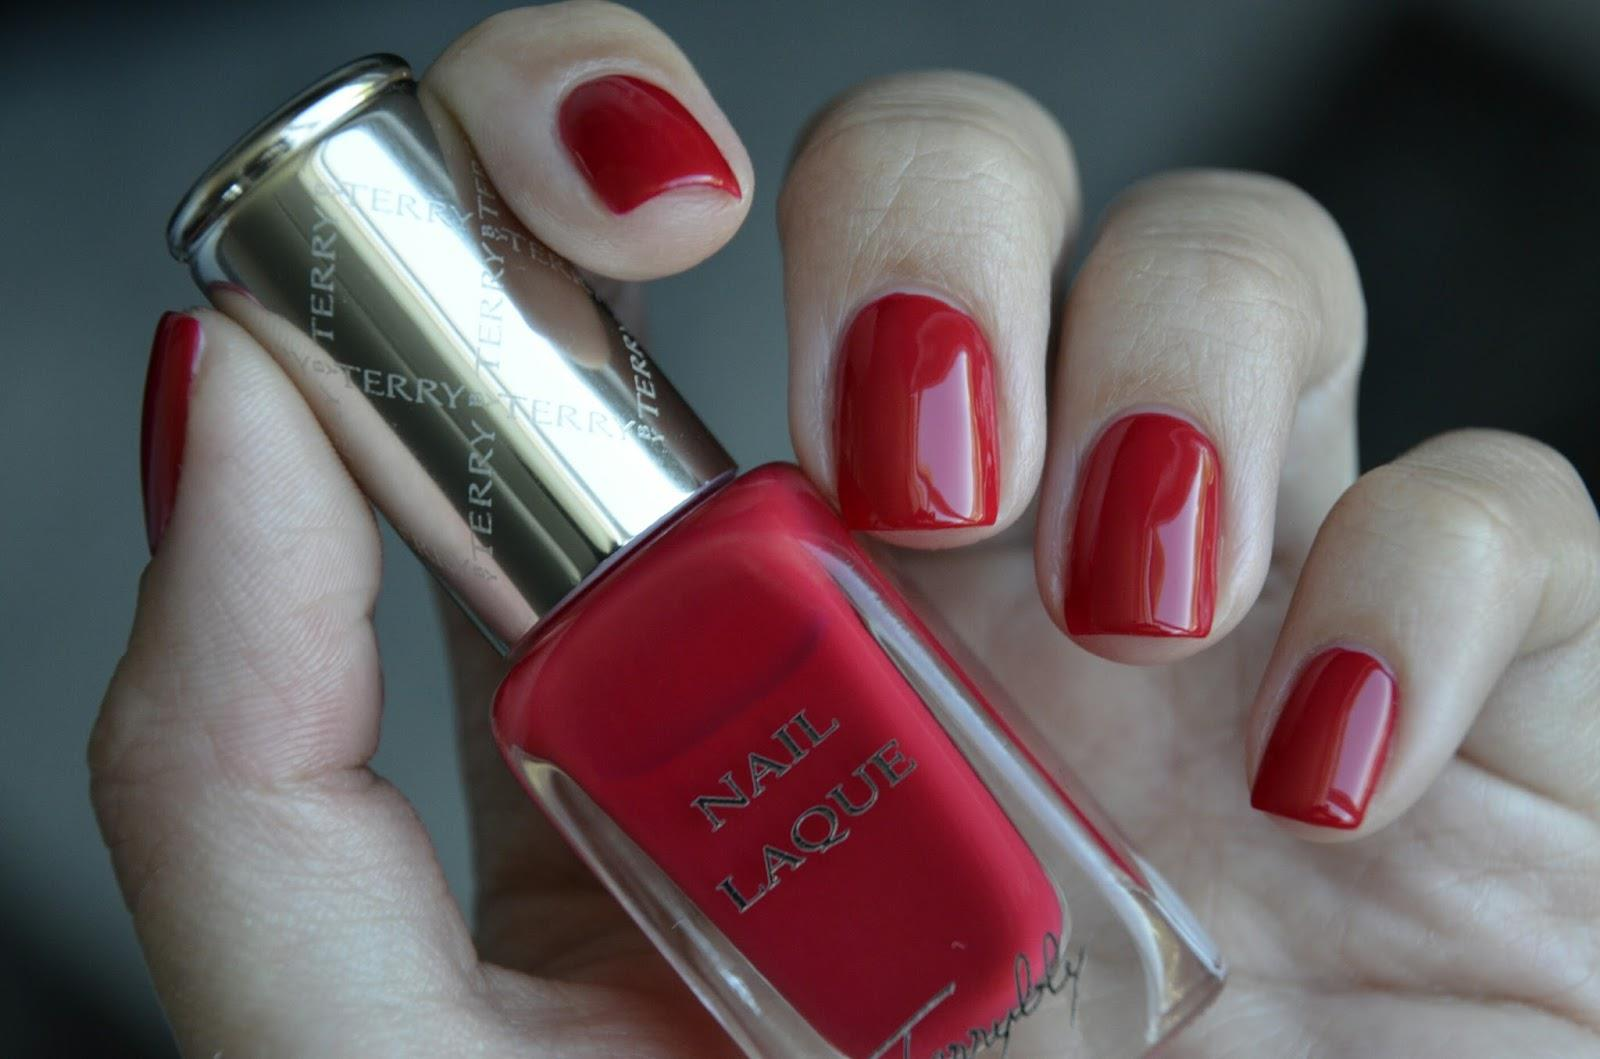 By Terry Nail Laque Terrybly High Shine 3 Oje